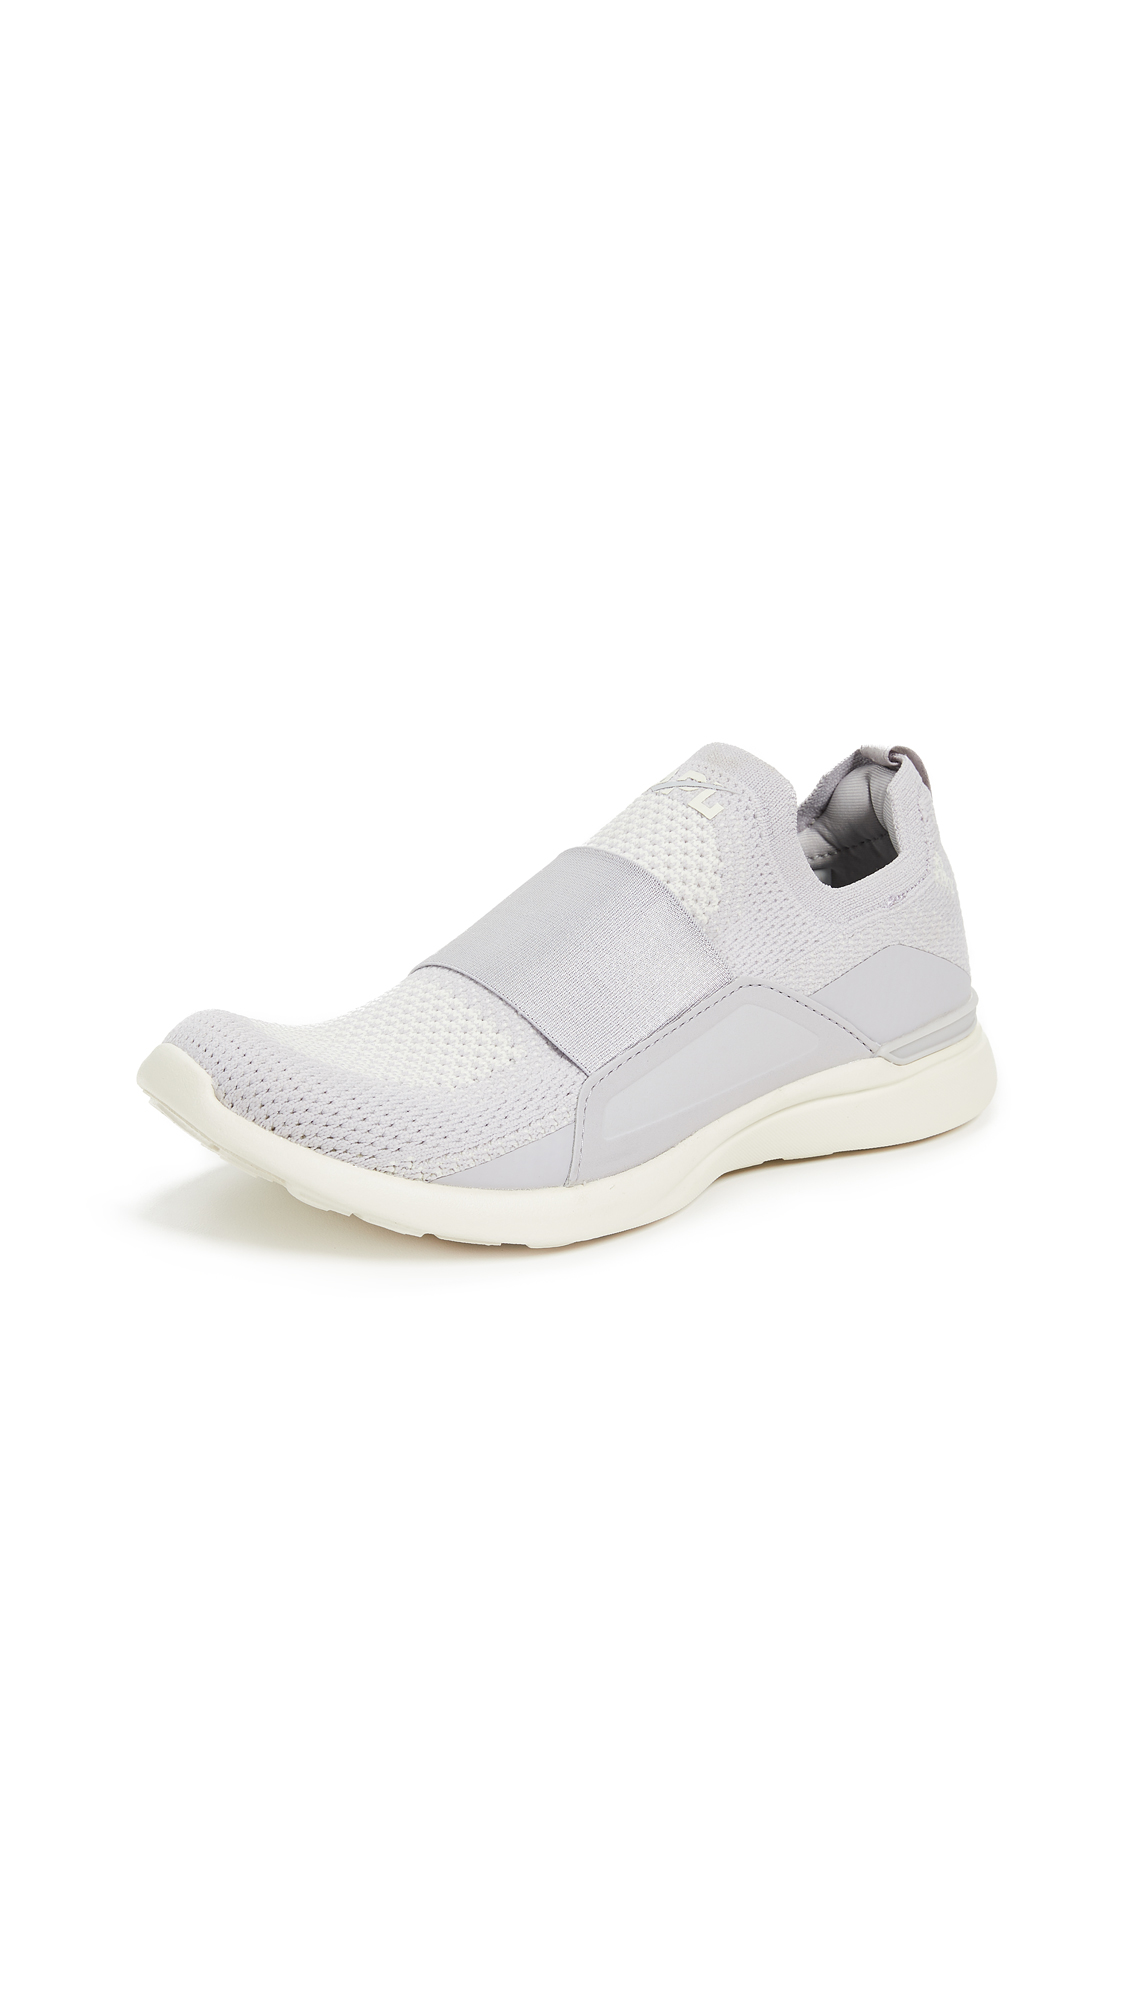 APL: Athletic Propulsion Labs TechLoom Bliss Sneakers - Raindrop/Pristine